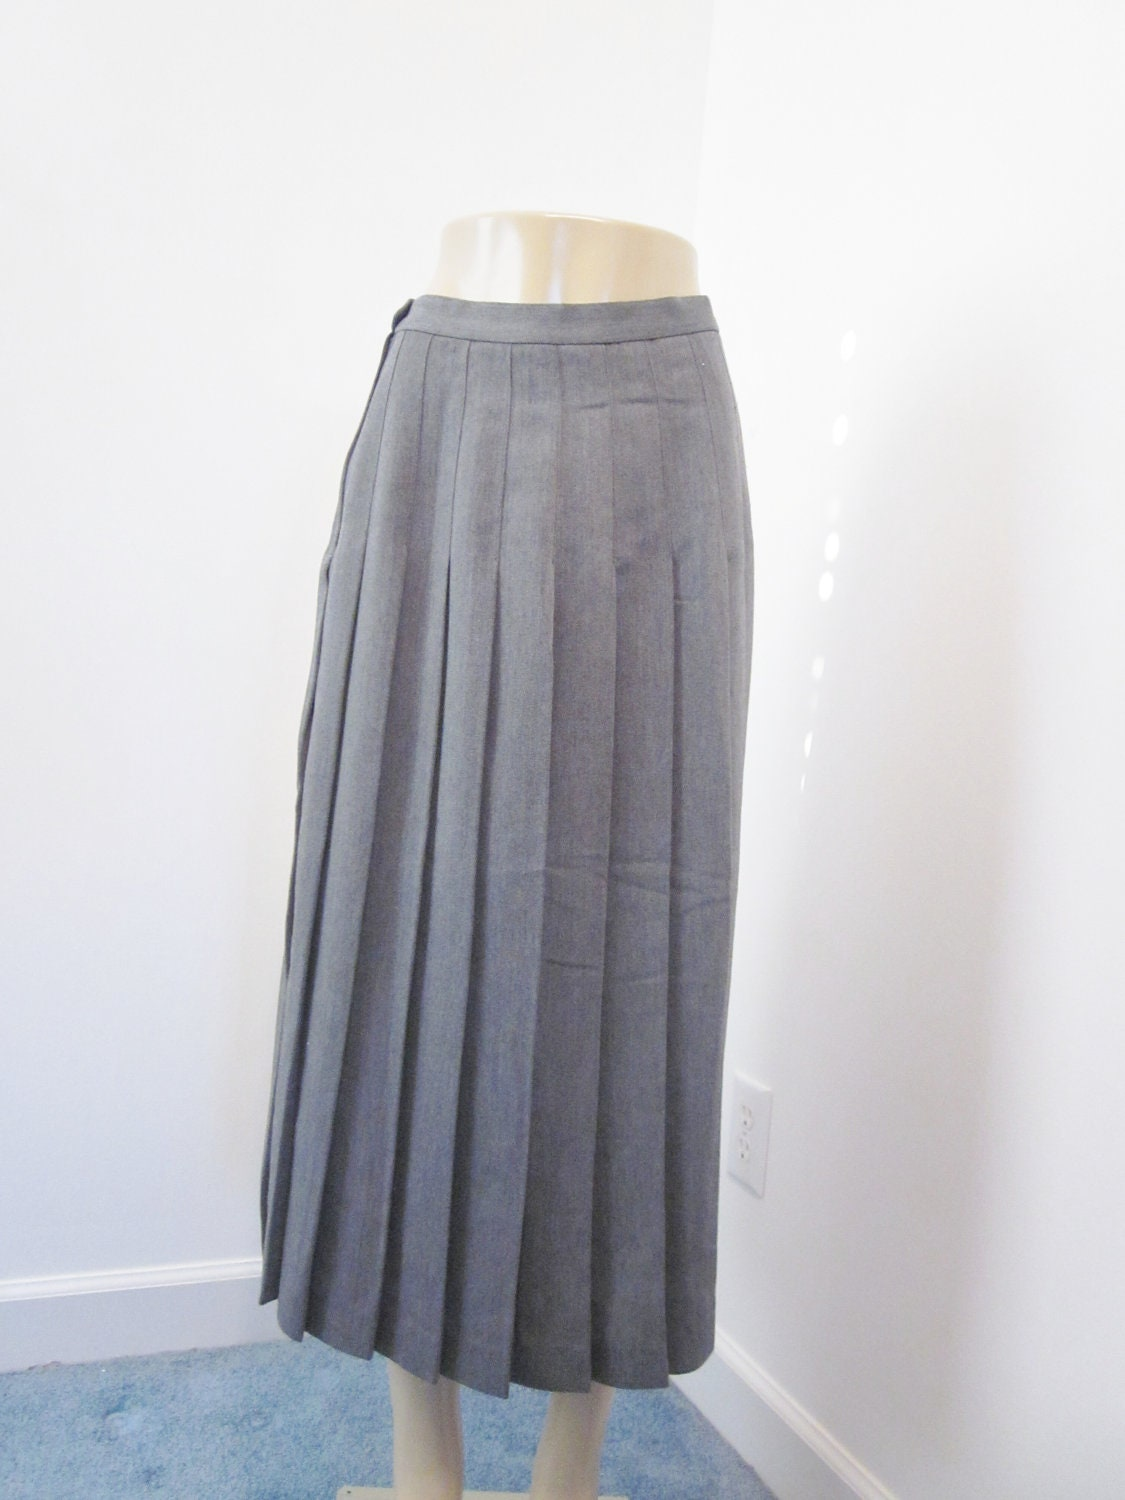 grey pleated skirt vintage 1970s pleated by